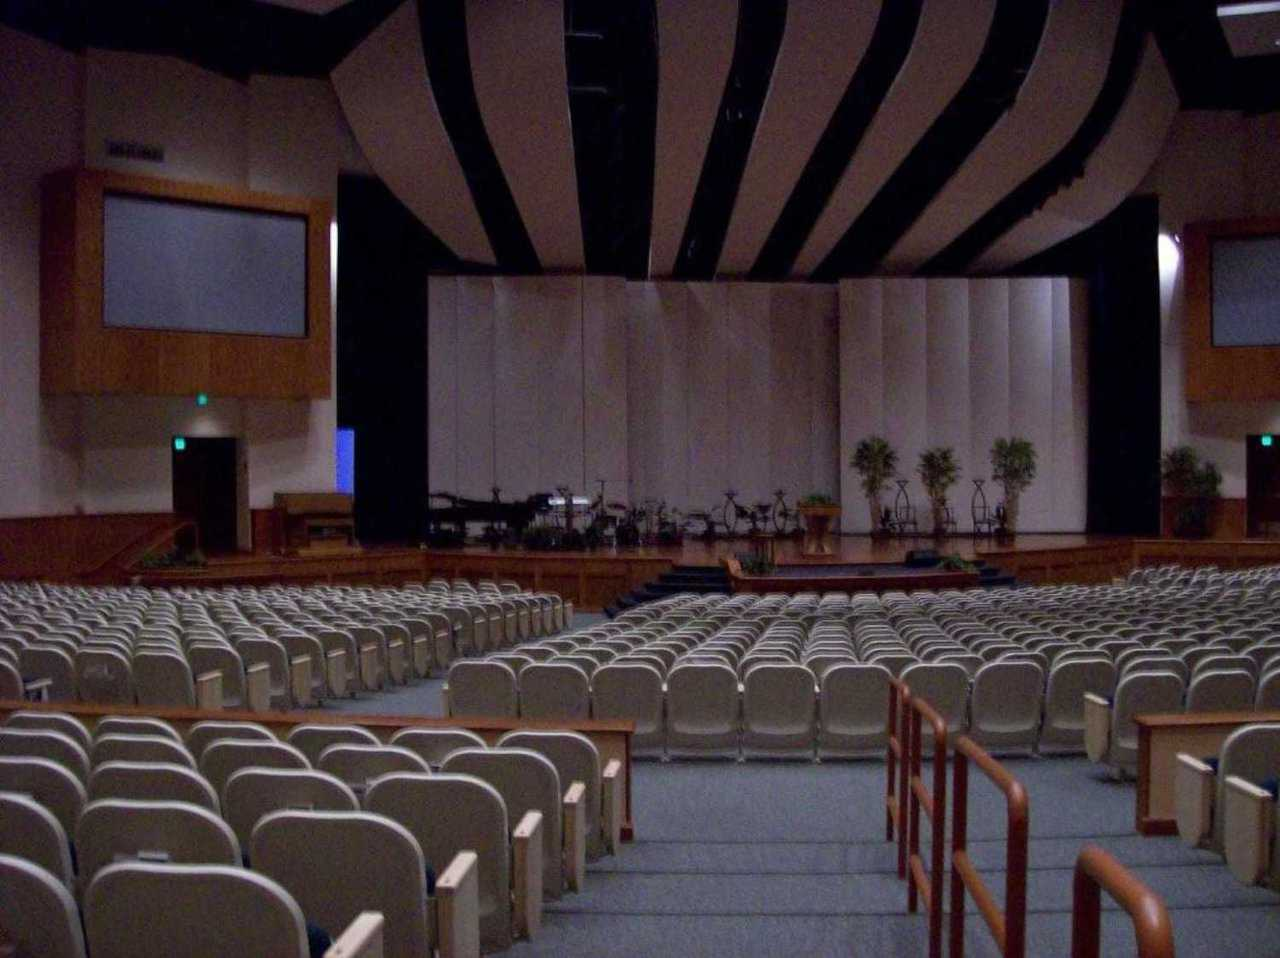 Stage — The dome sanctuary has a large, wooden stage with movable towers and platforms that easily accommodate a 140-member choir.